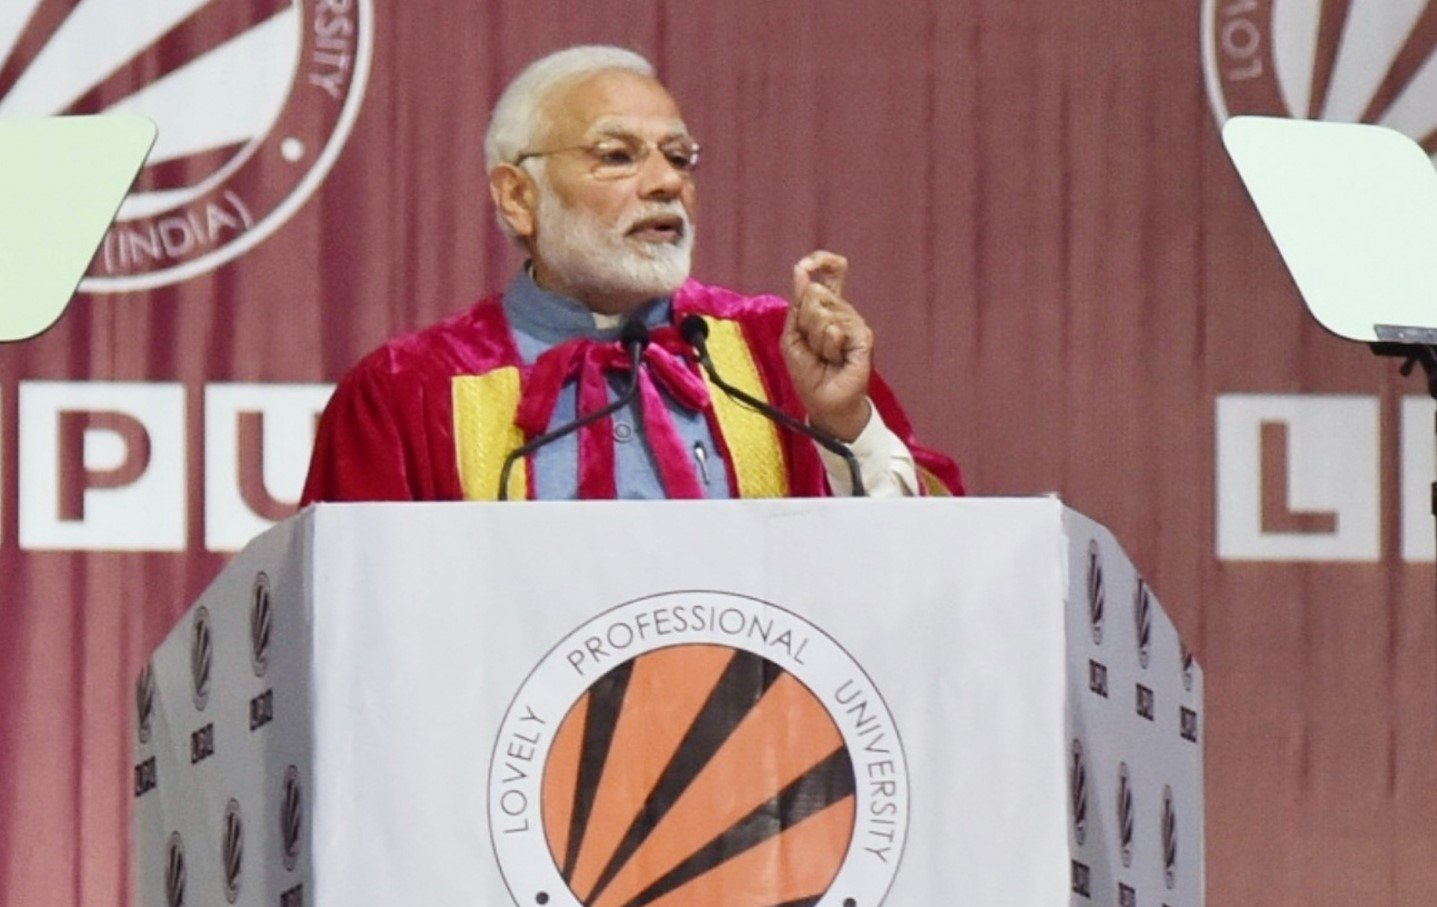 Modi at Indian Science Congress